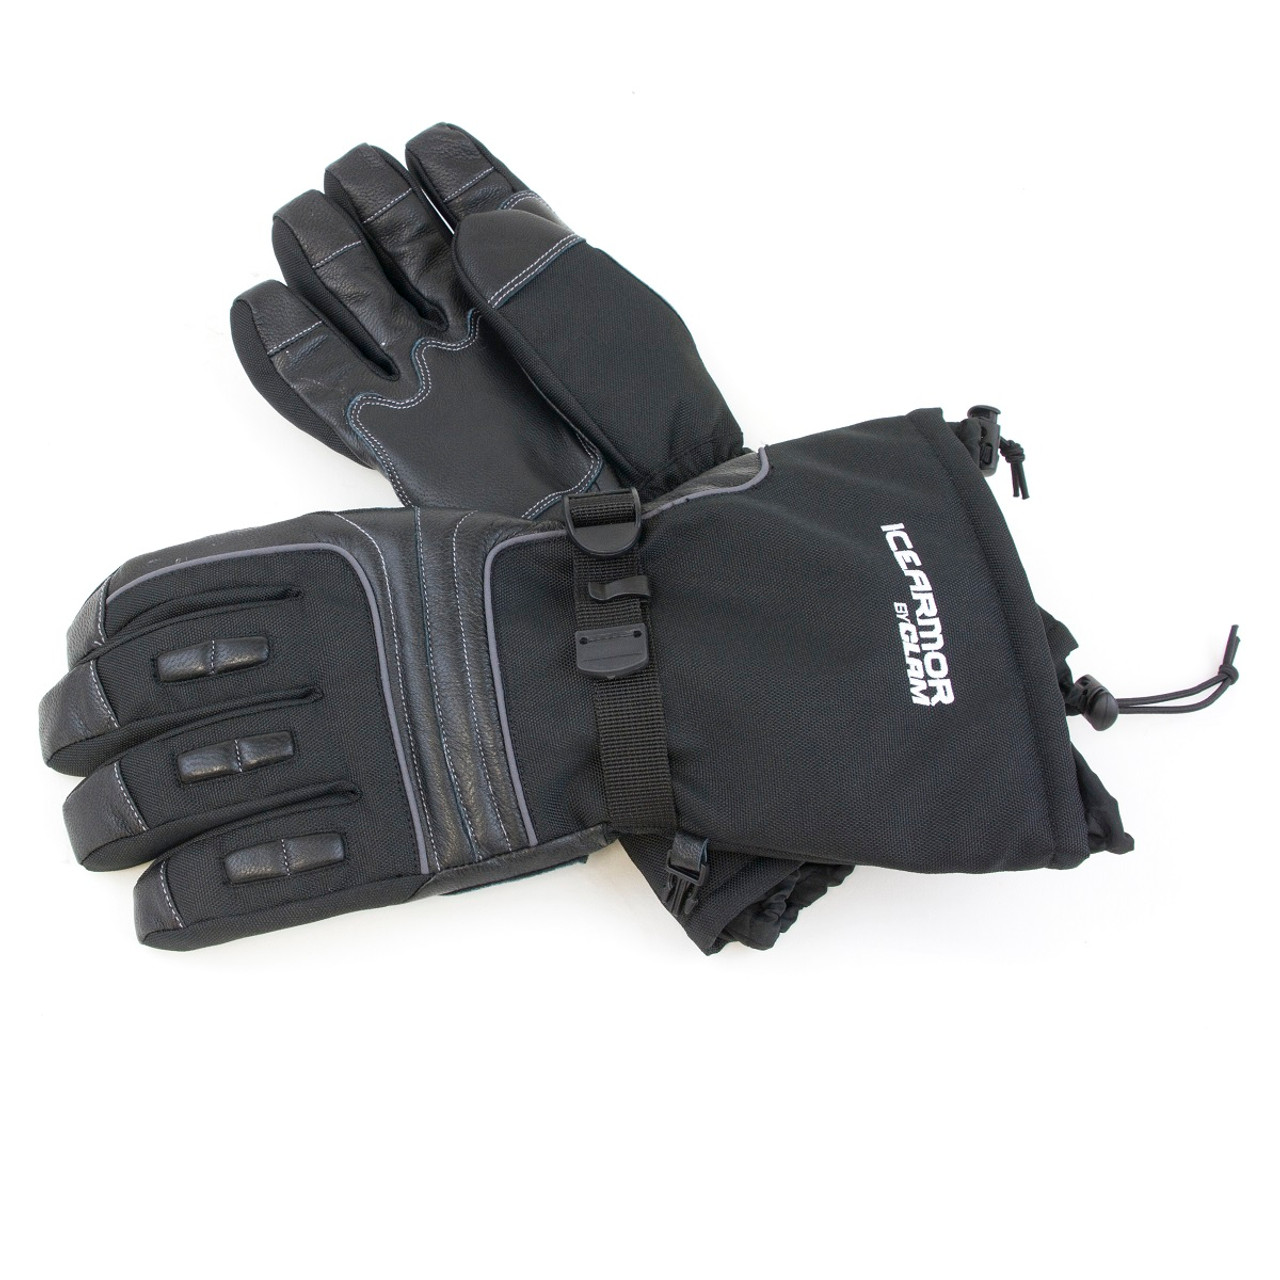 Clam Outdoors IceArmor Renegade Ice Fishing Gloves